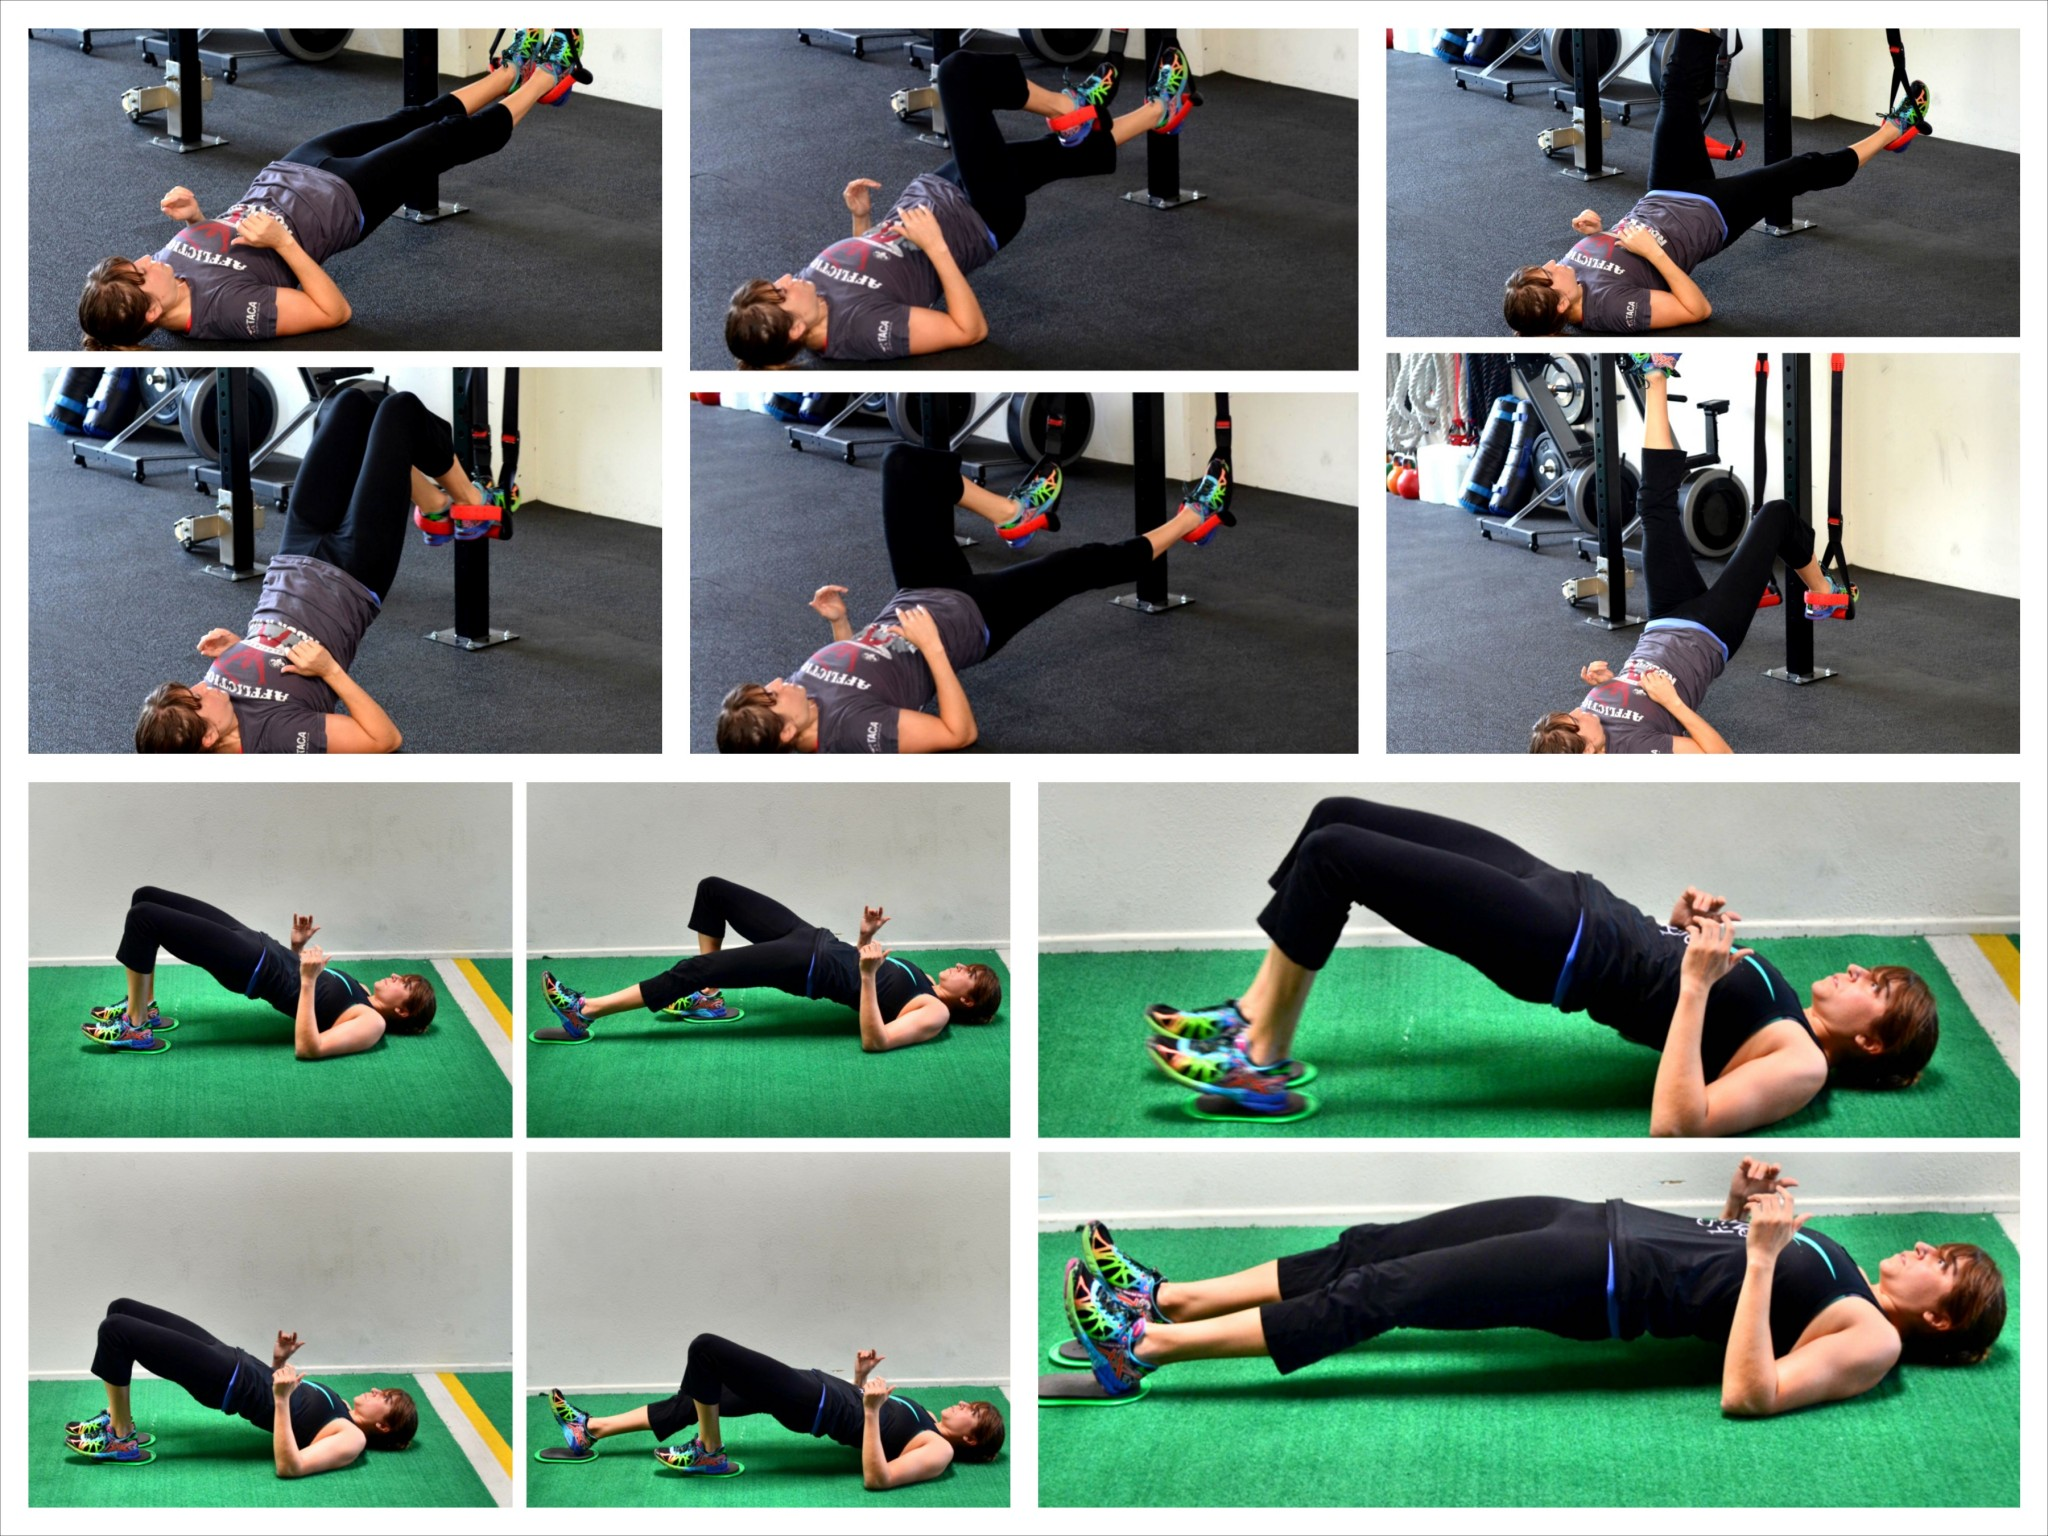 The Glute Bridge and Curl